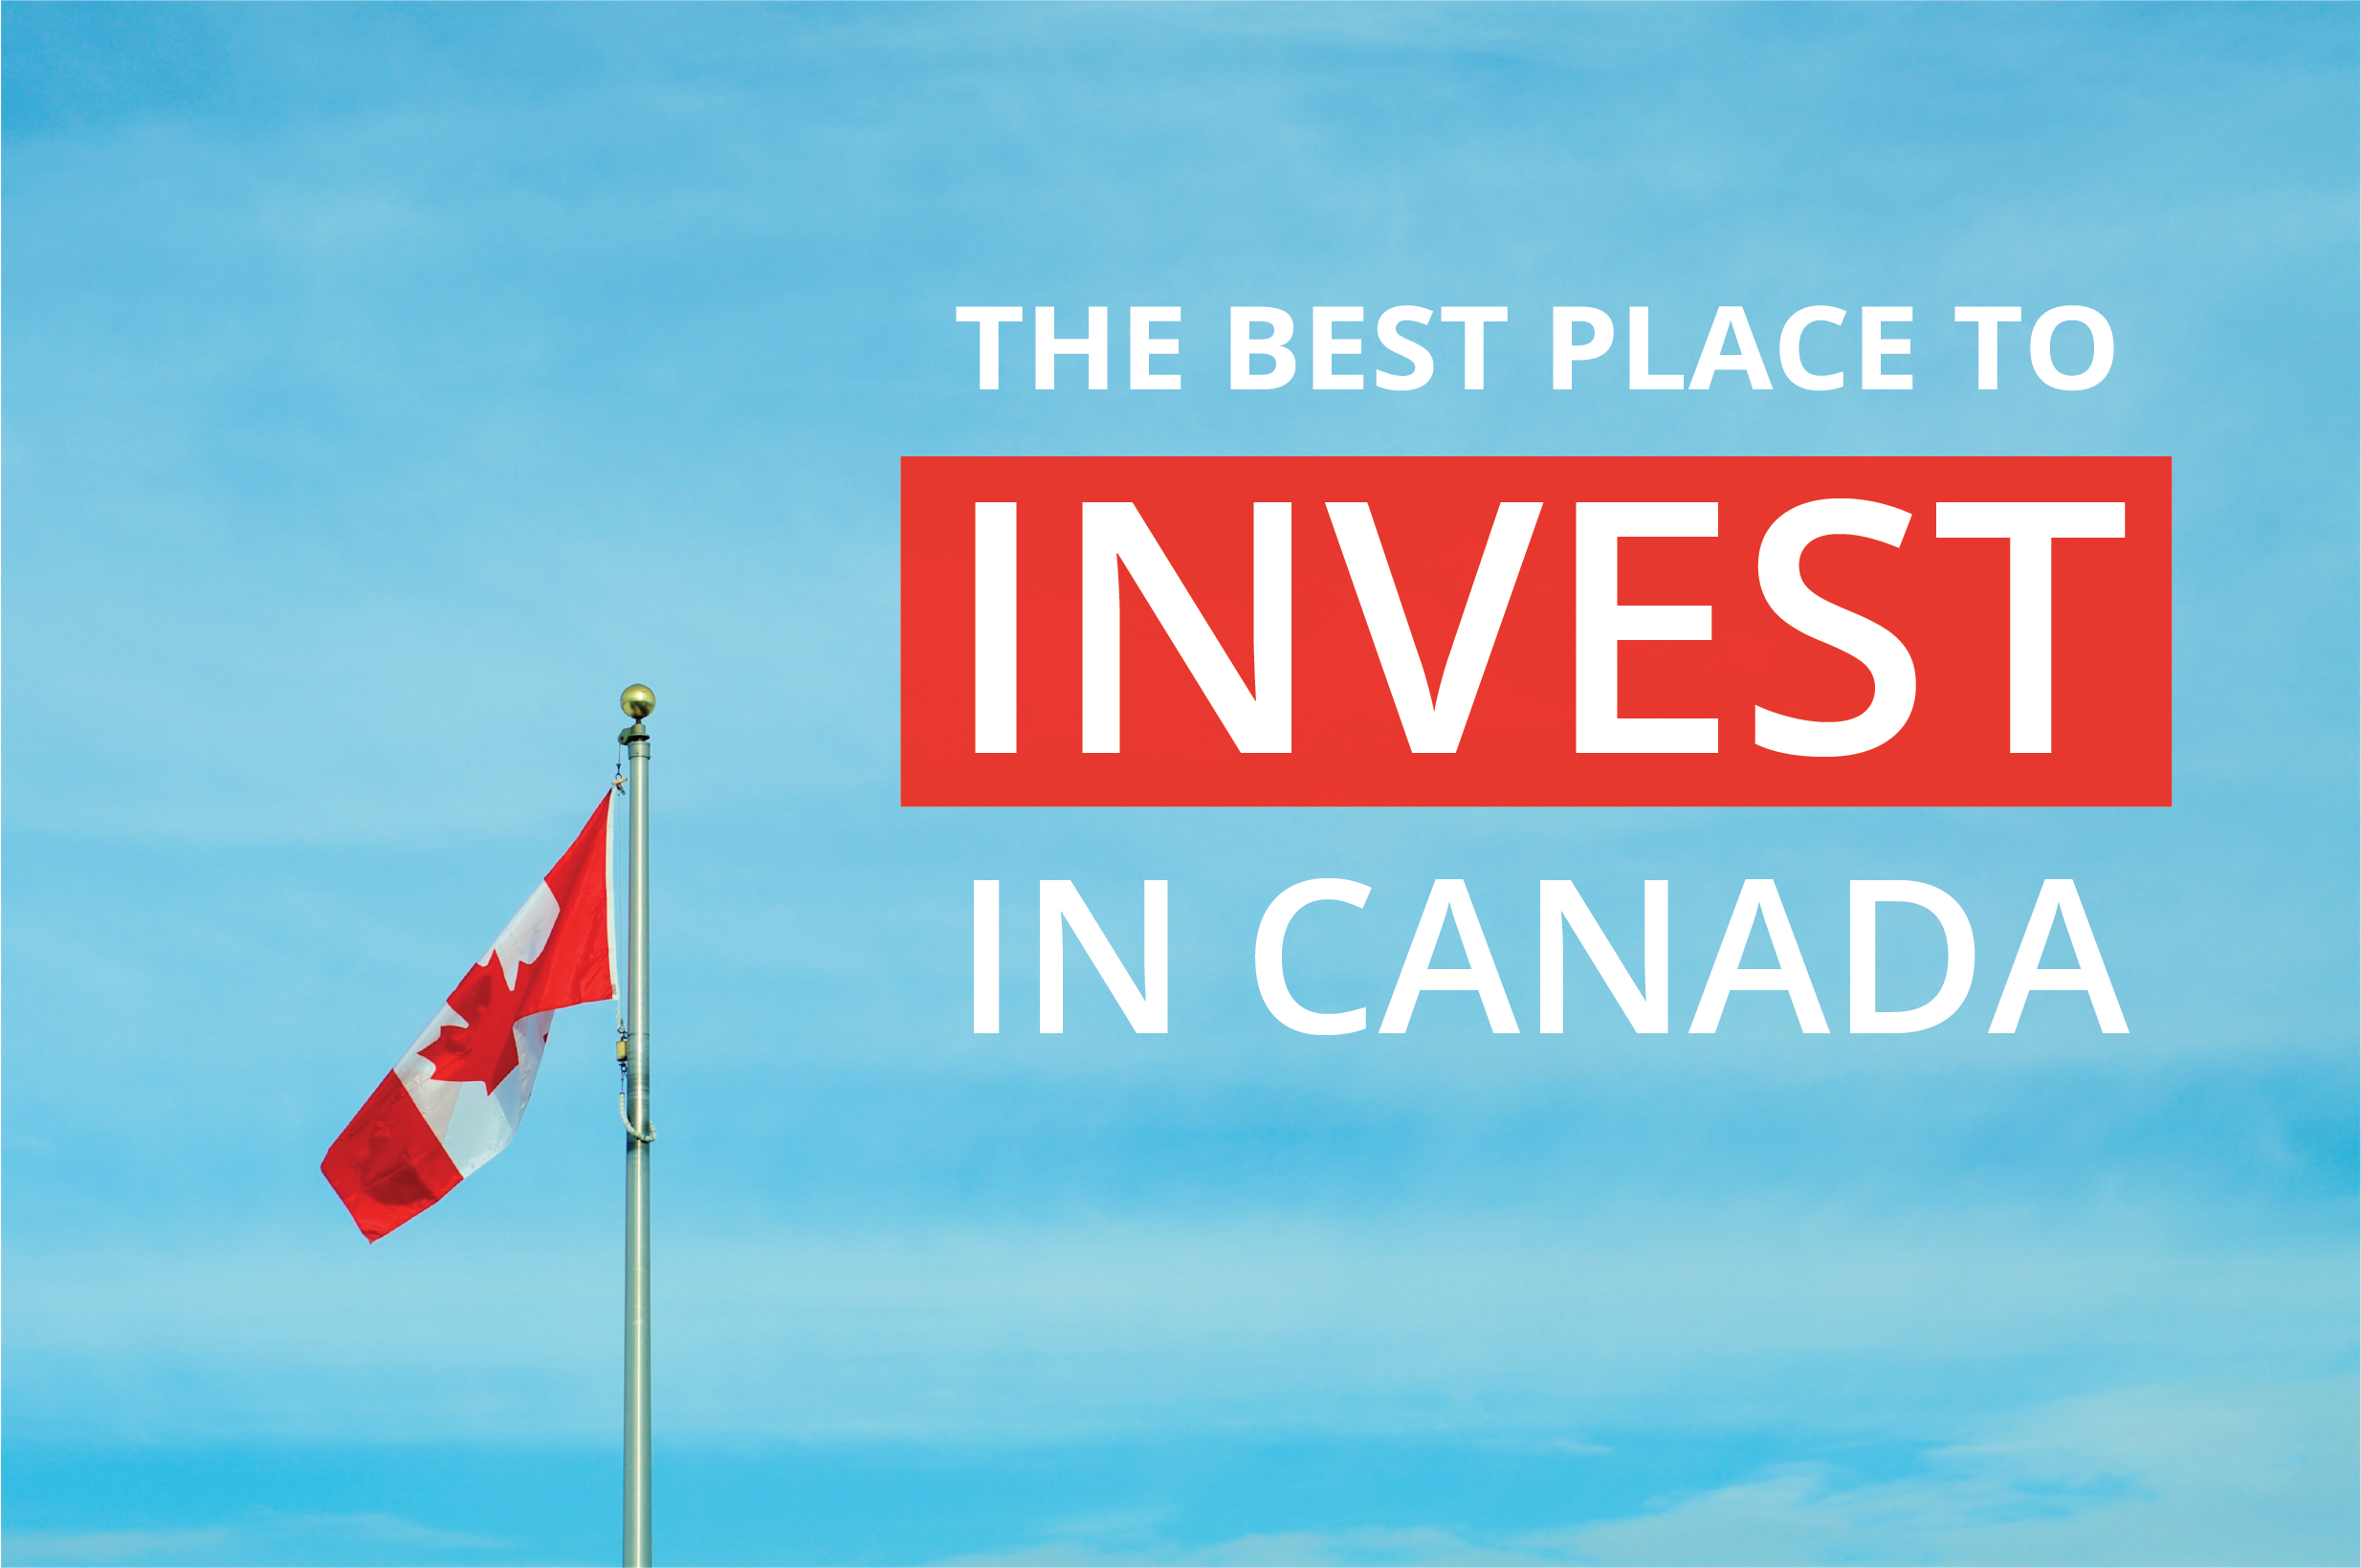 Blog Image: Best Place To Invest In Canada